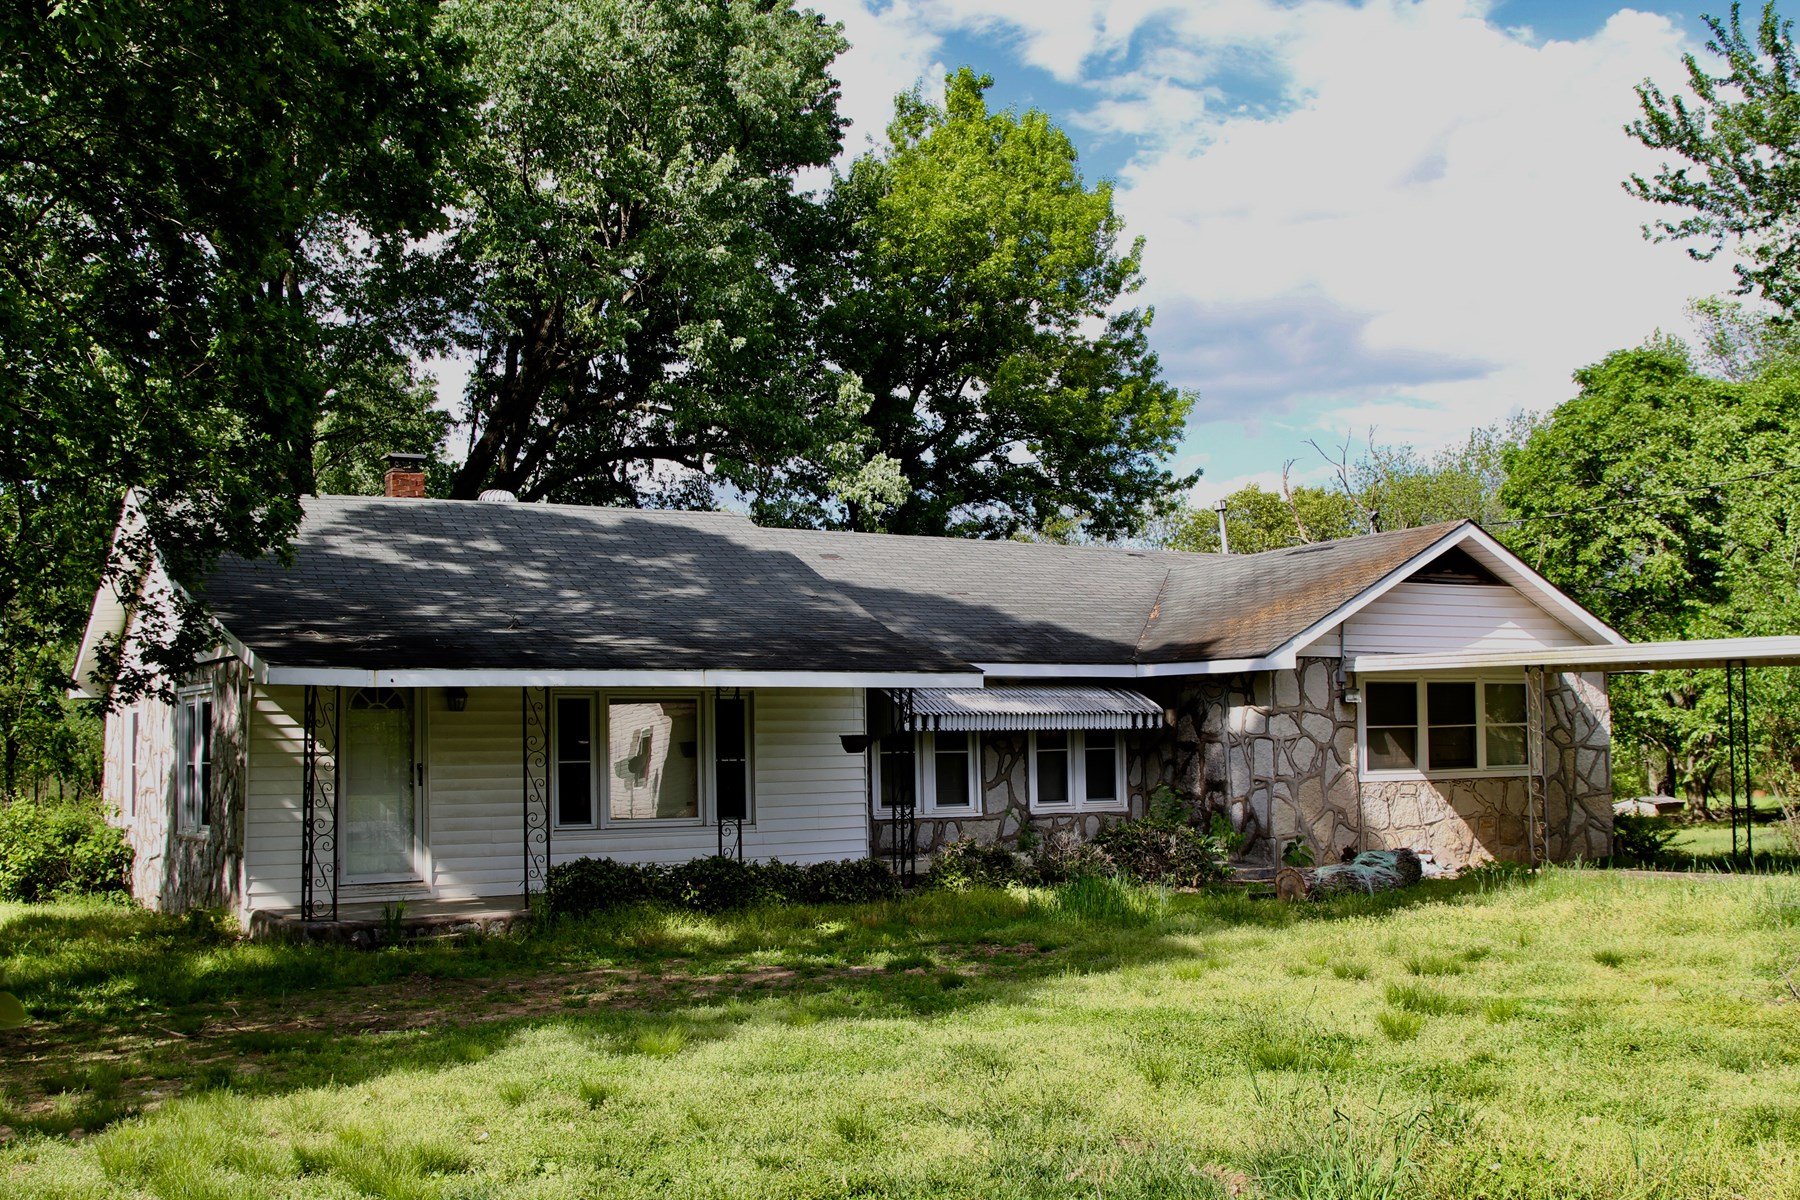 HOME ON .82 +/- ACRES IN NE OKLA; MAY 31 @ 4 PM